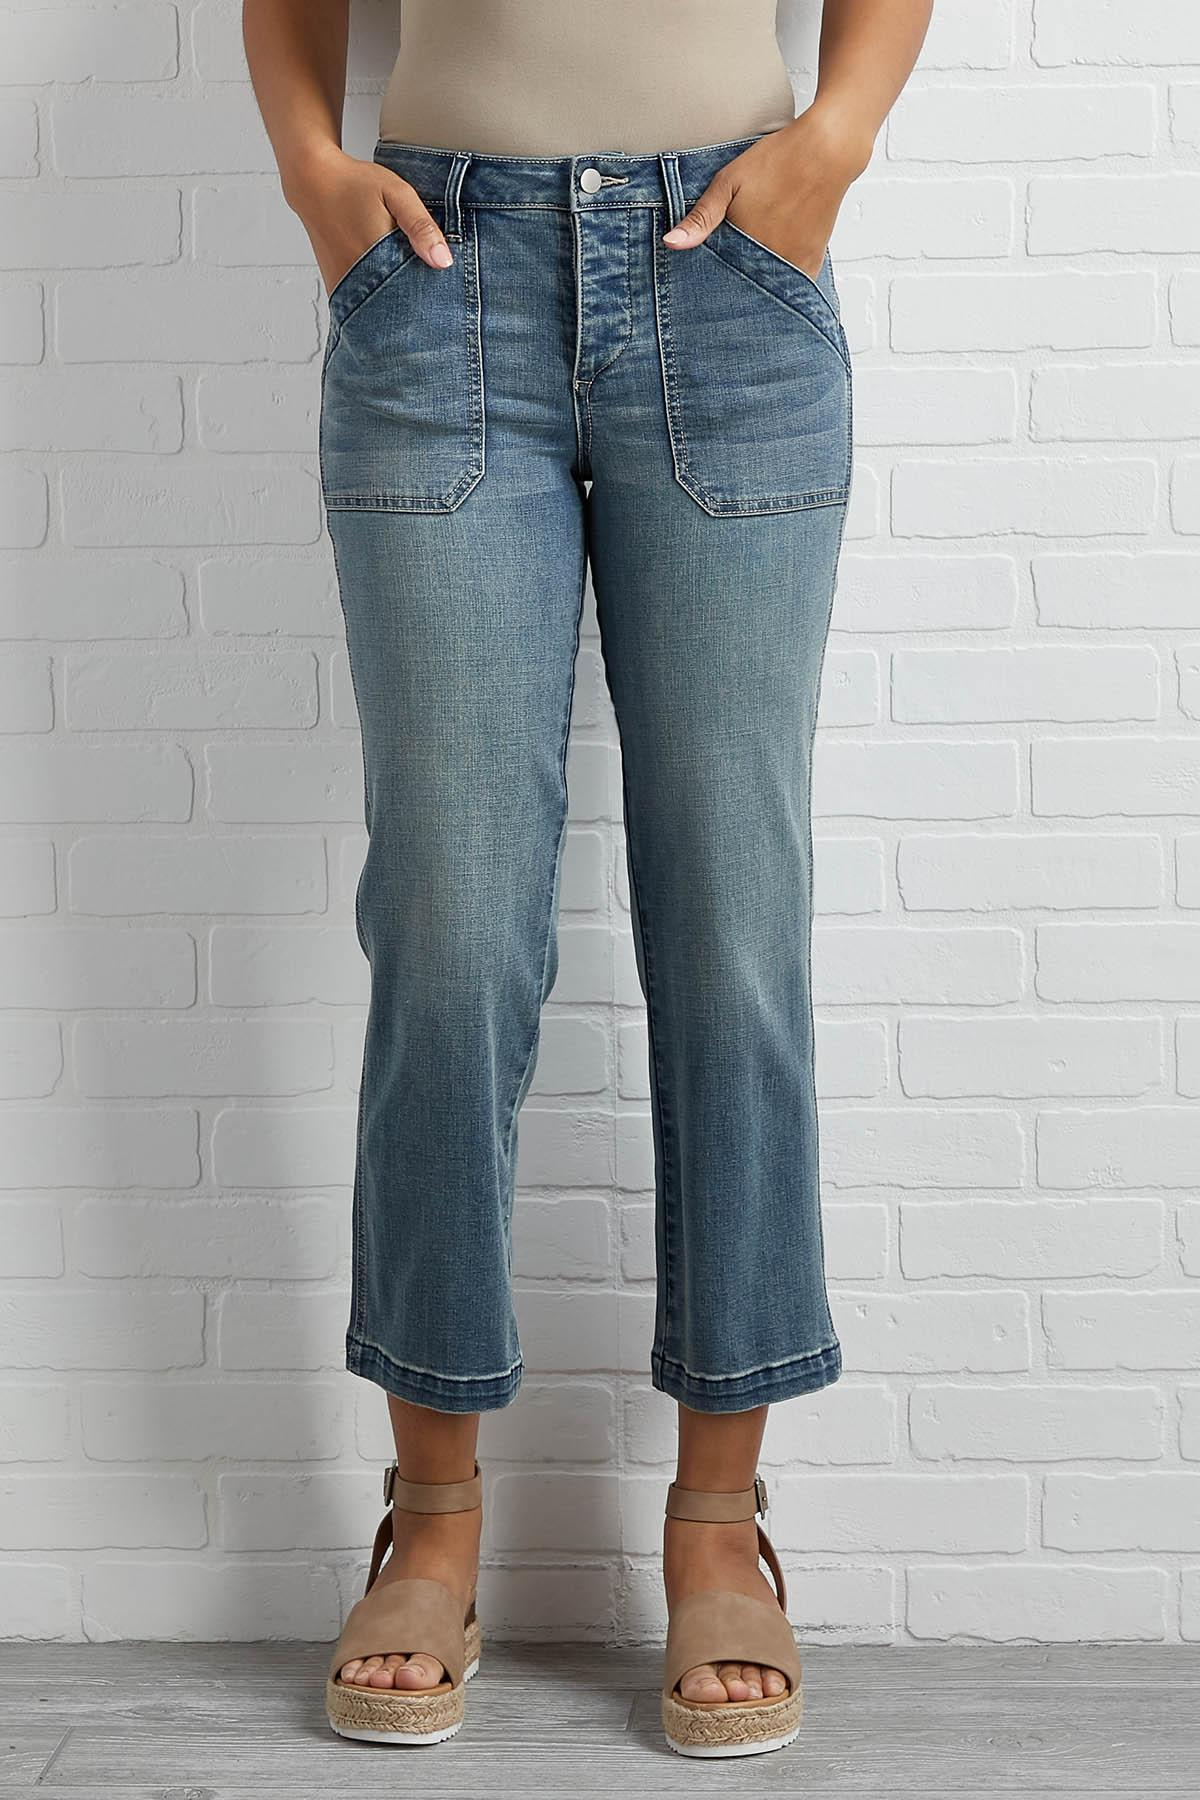 Taking The High Road Jeans